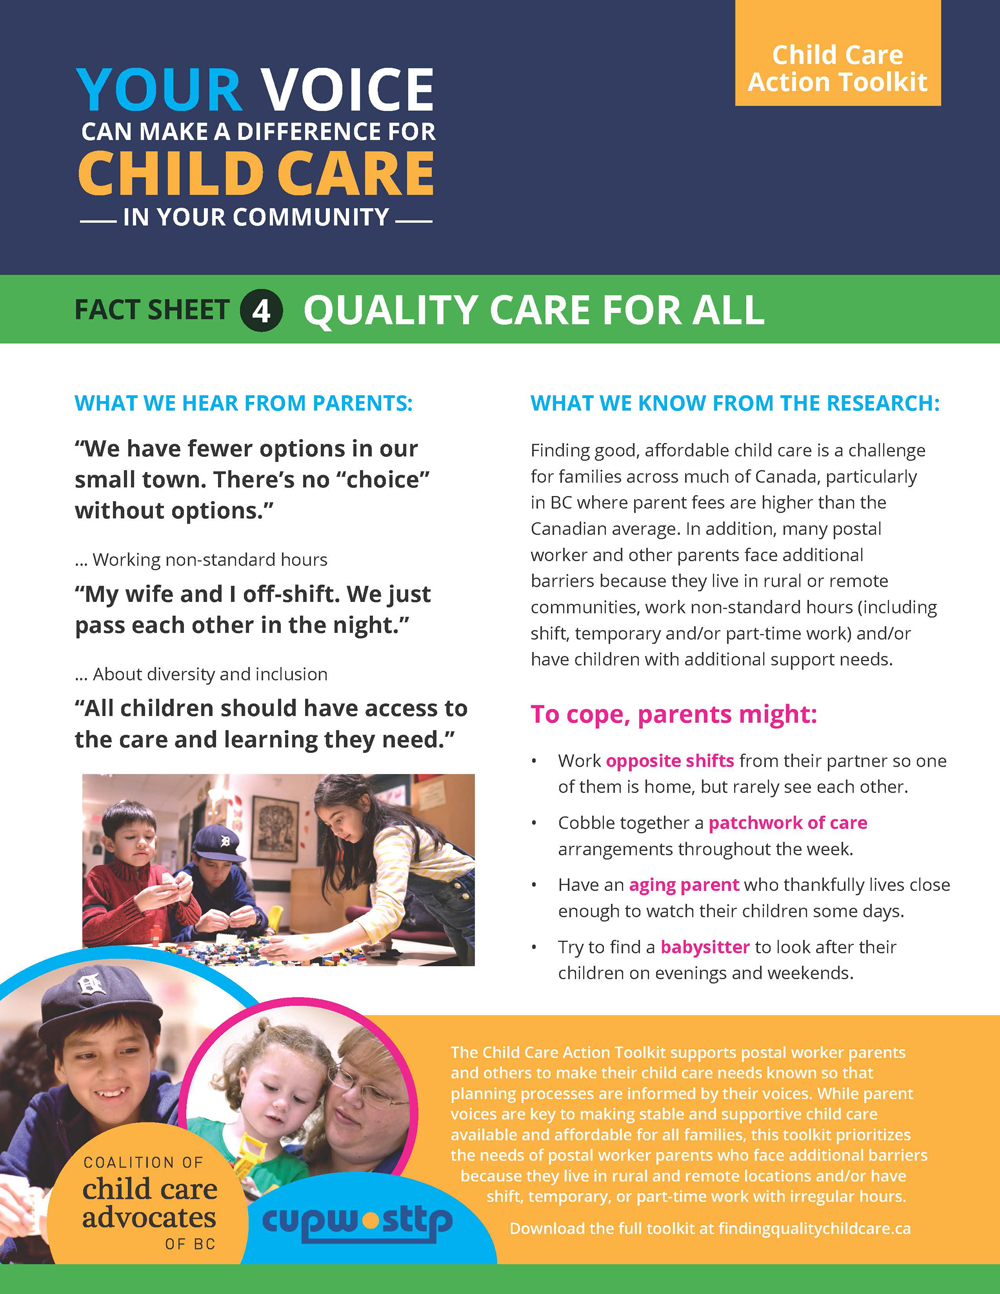 Fact Sheet 4: Quality Care for All